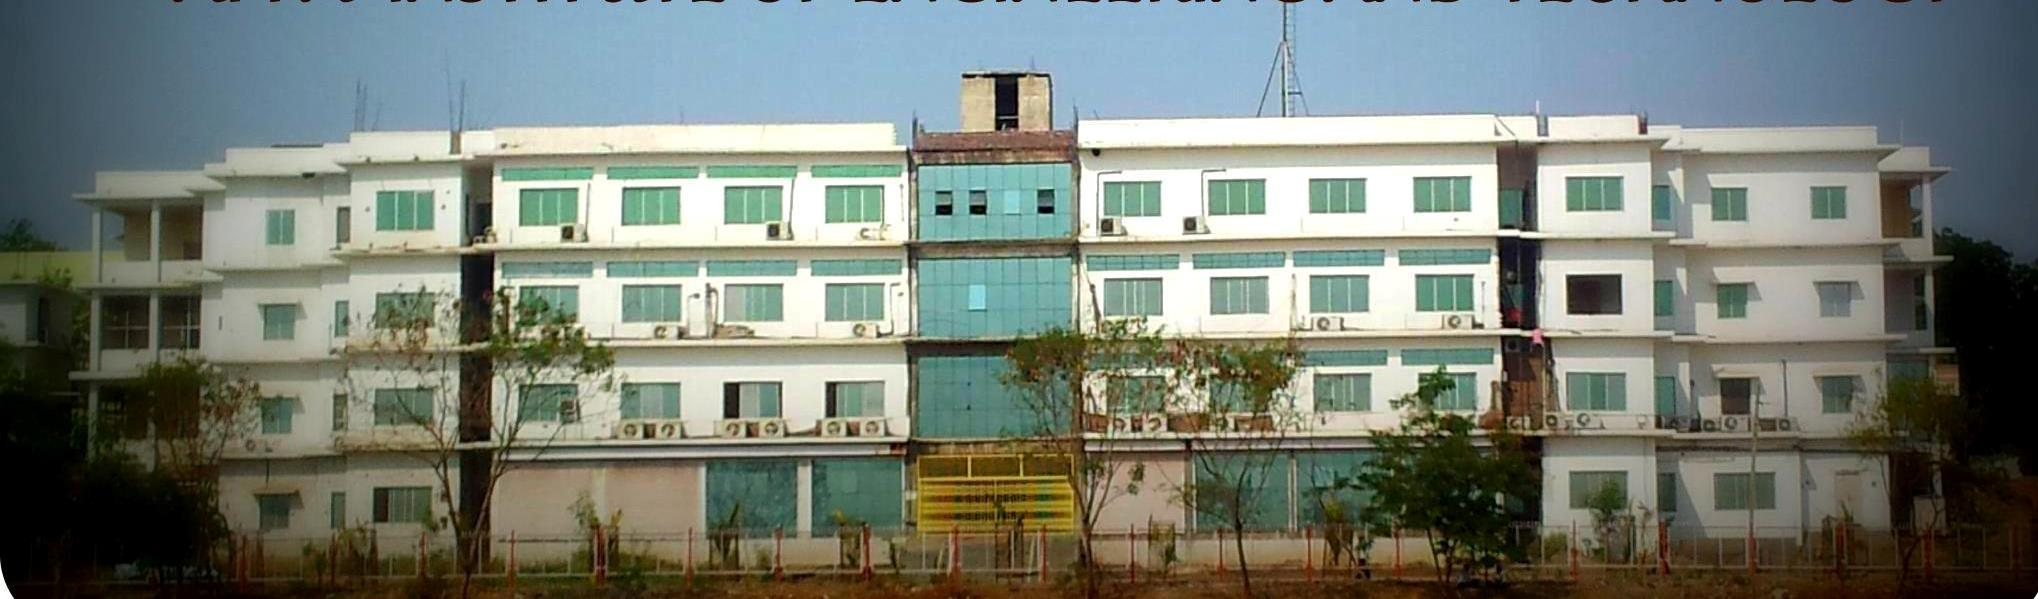 Appa Institute Of Engineering And Technology Image